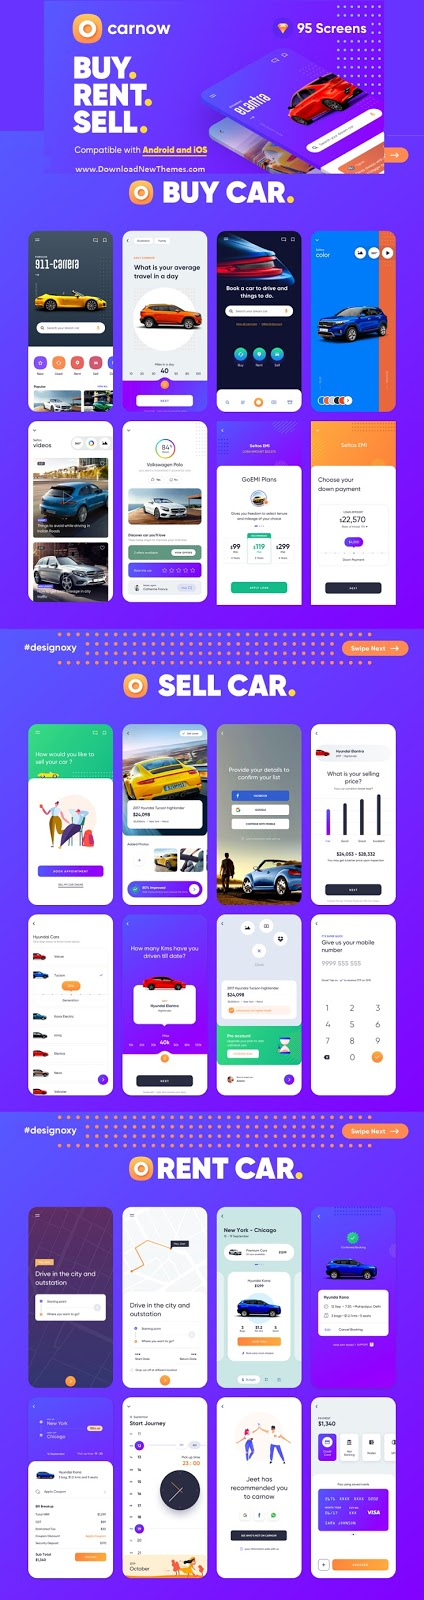 Carnow - Car buy, rent and sell Mobile app UI kit